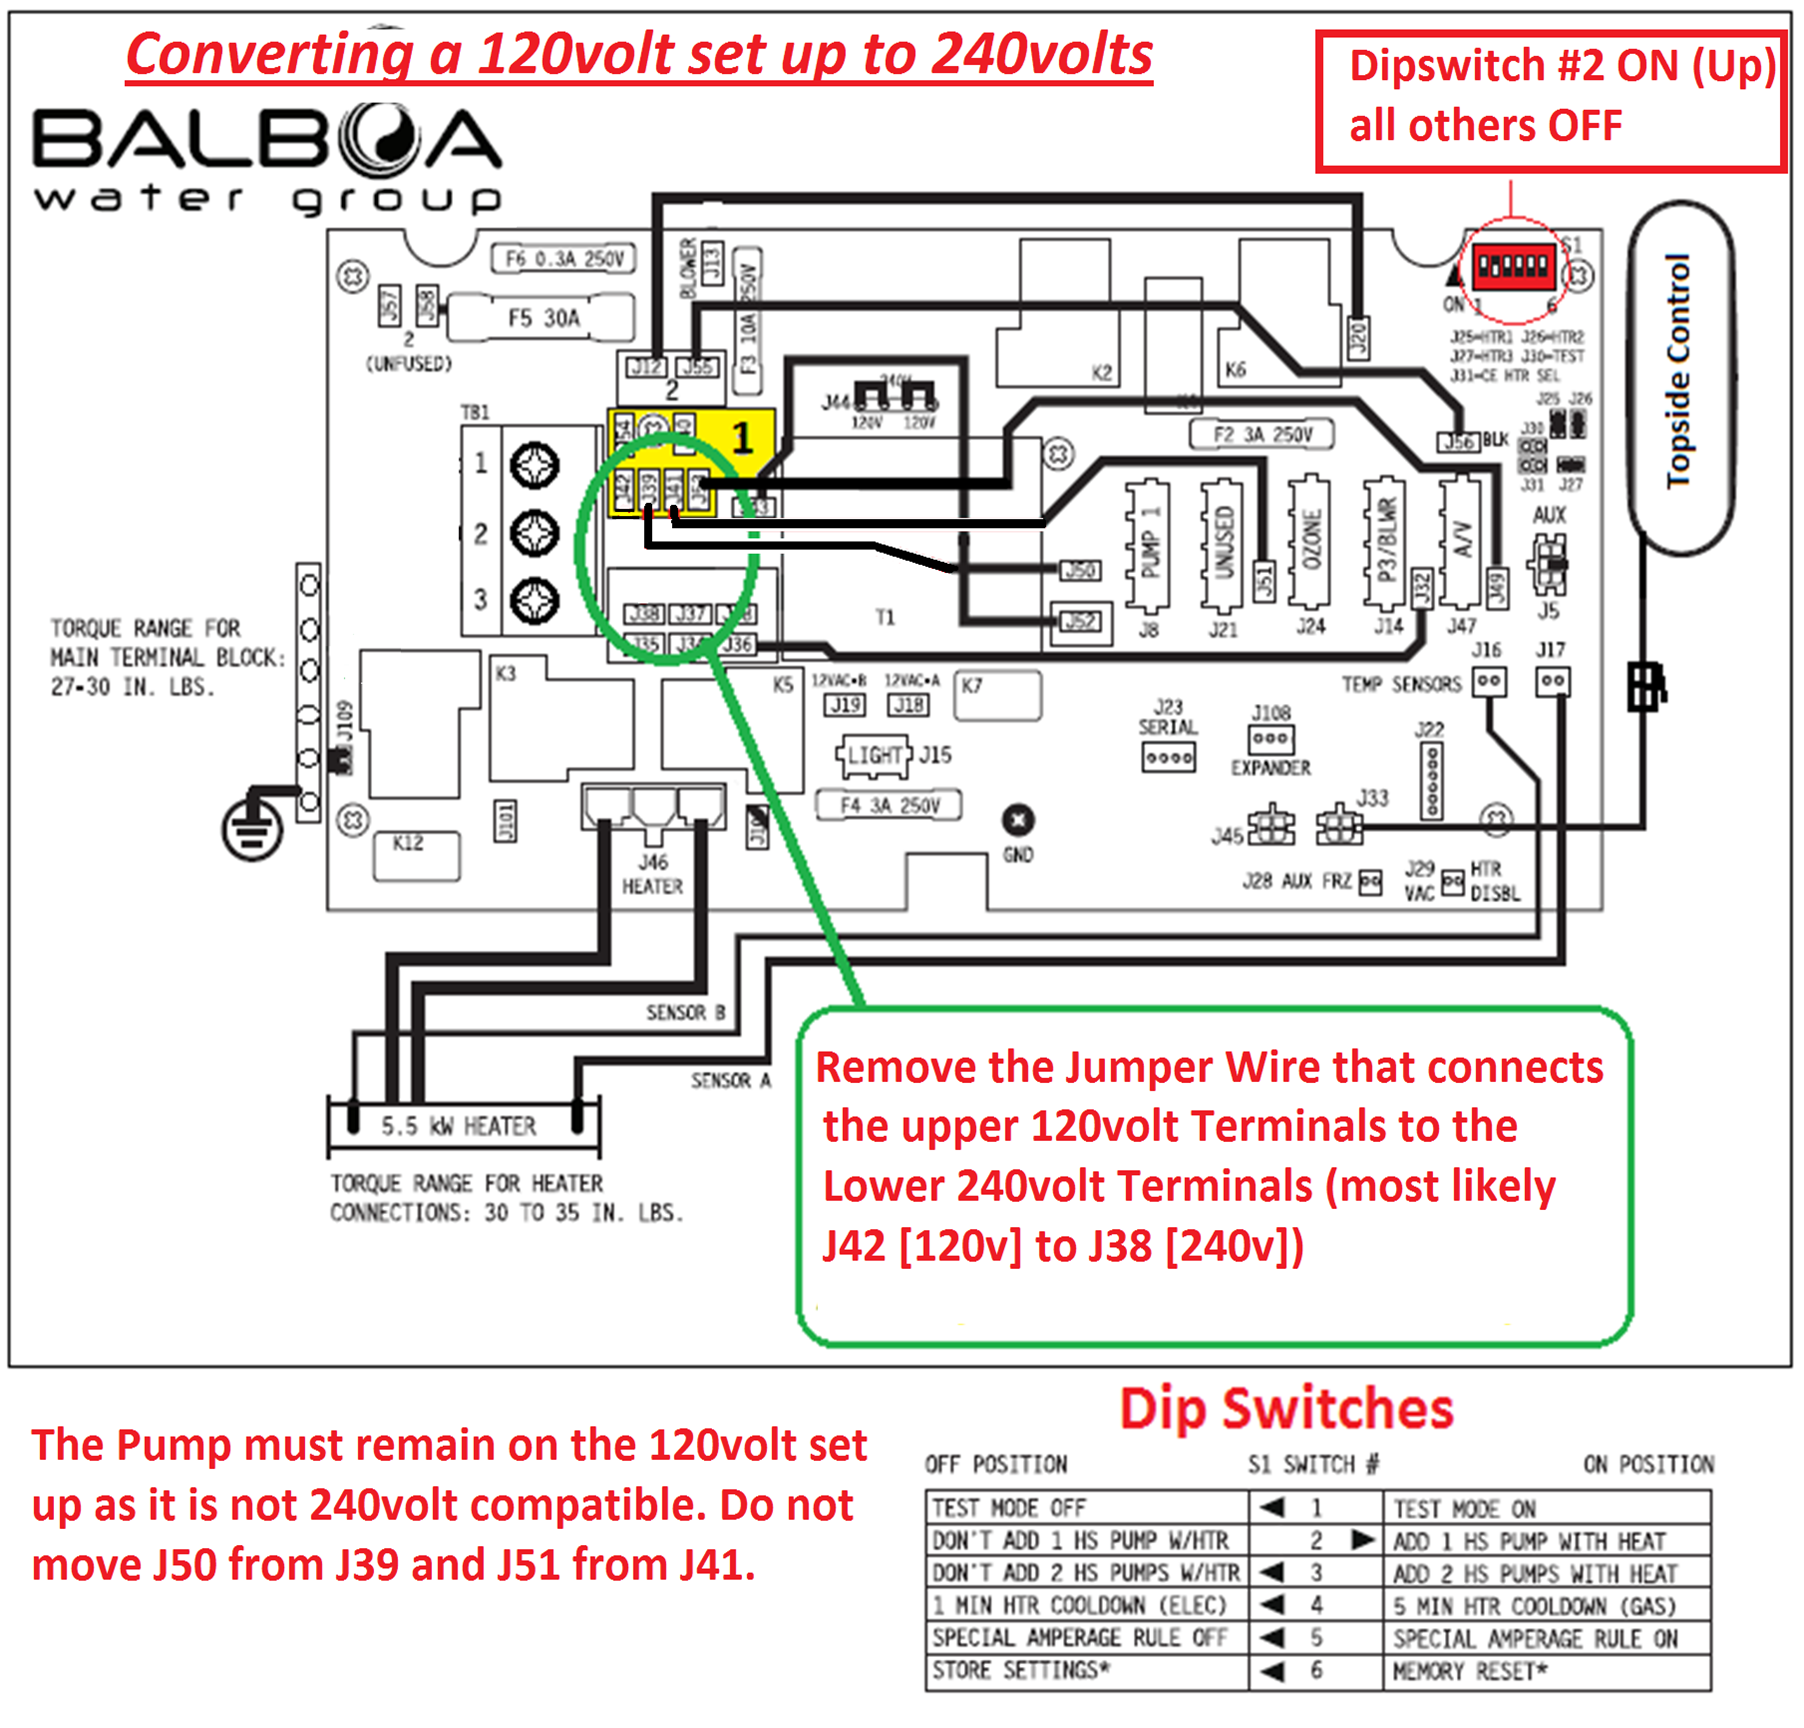 electrical installation converting a 120v balboa bp to 240v Hot Springs Spa Plumbing Diagram